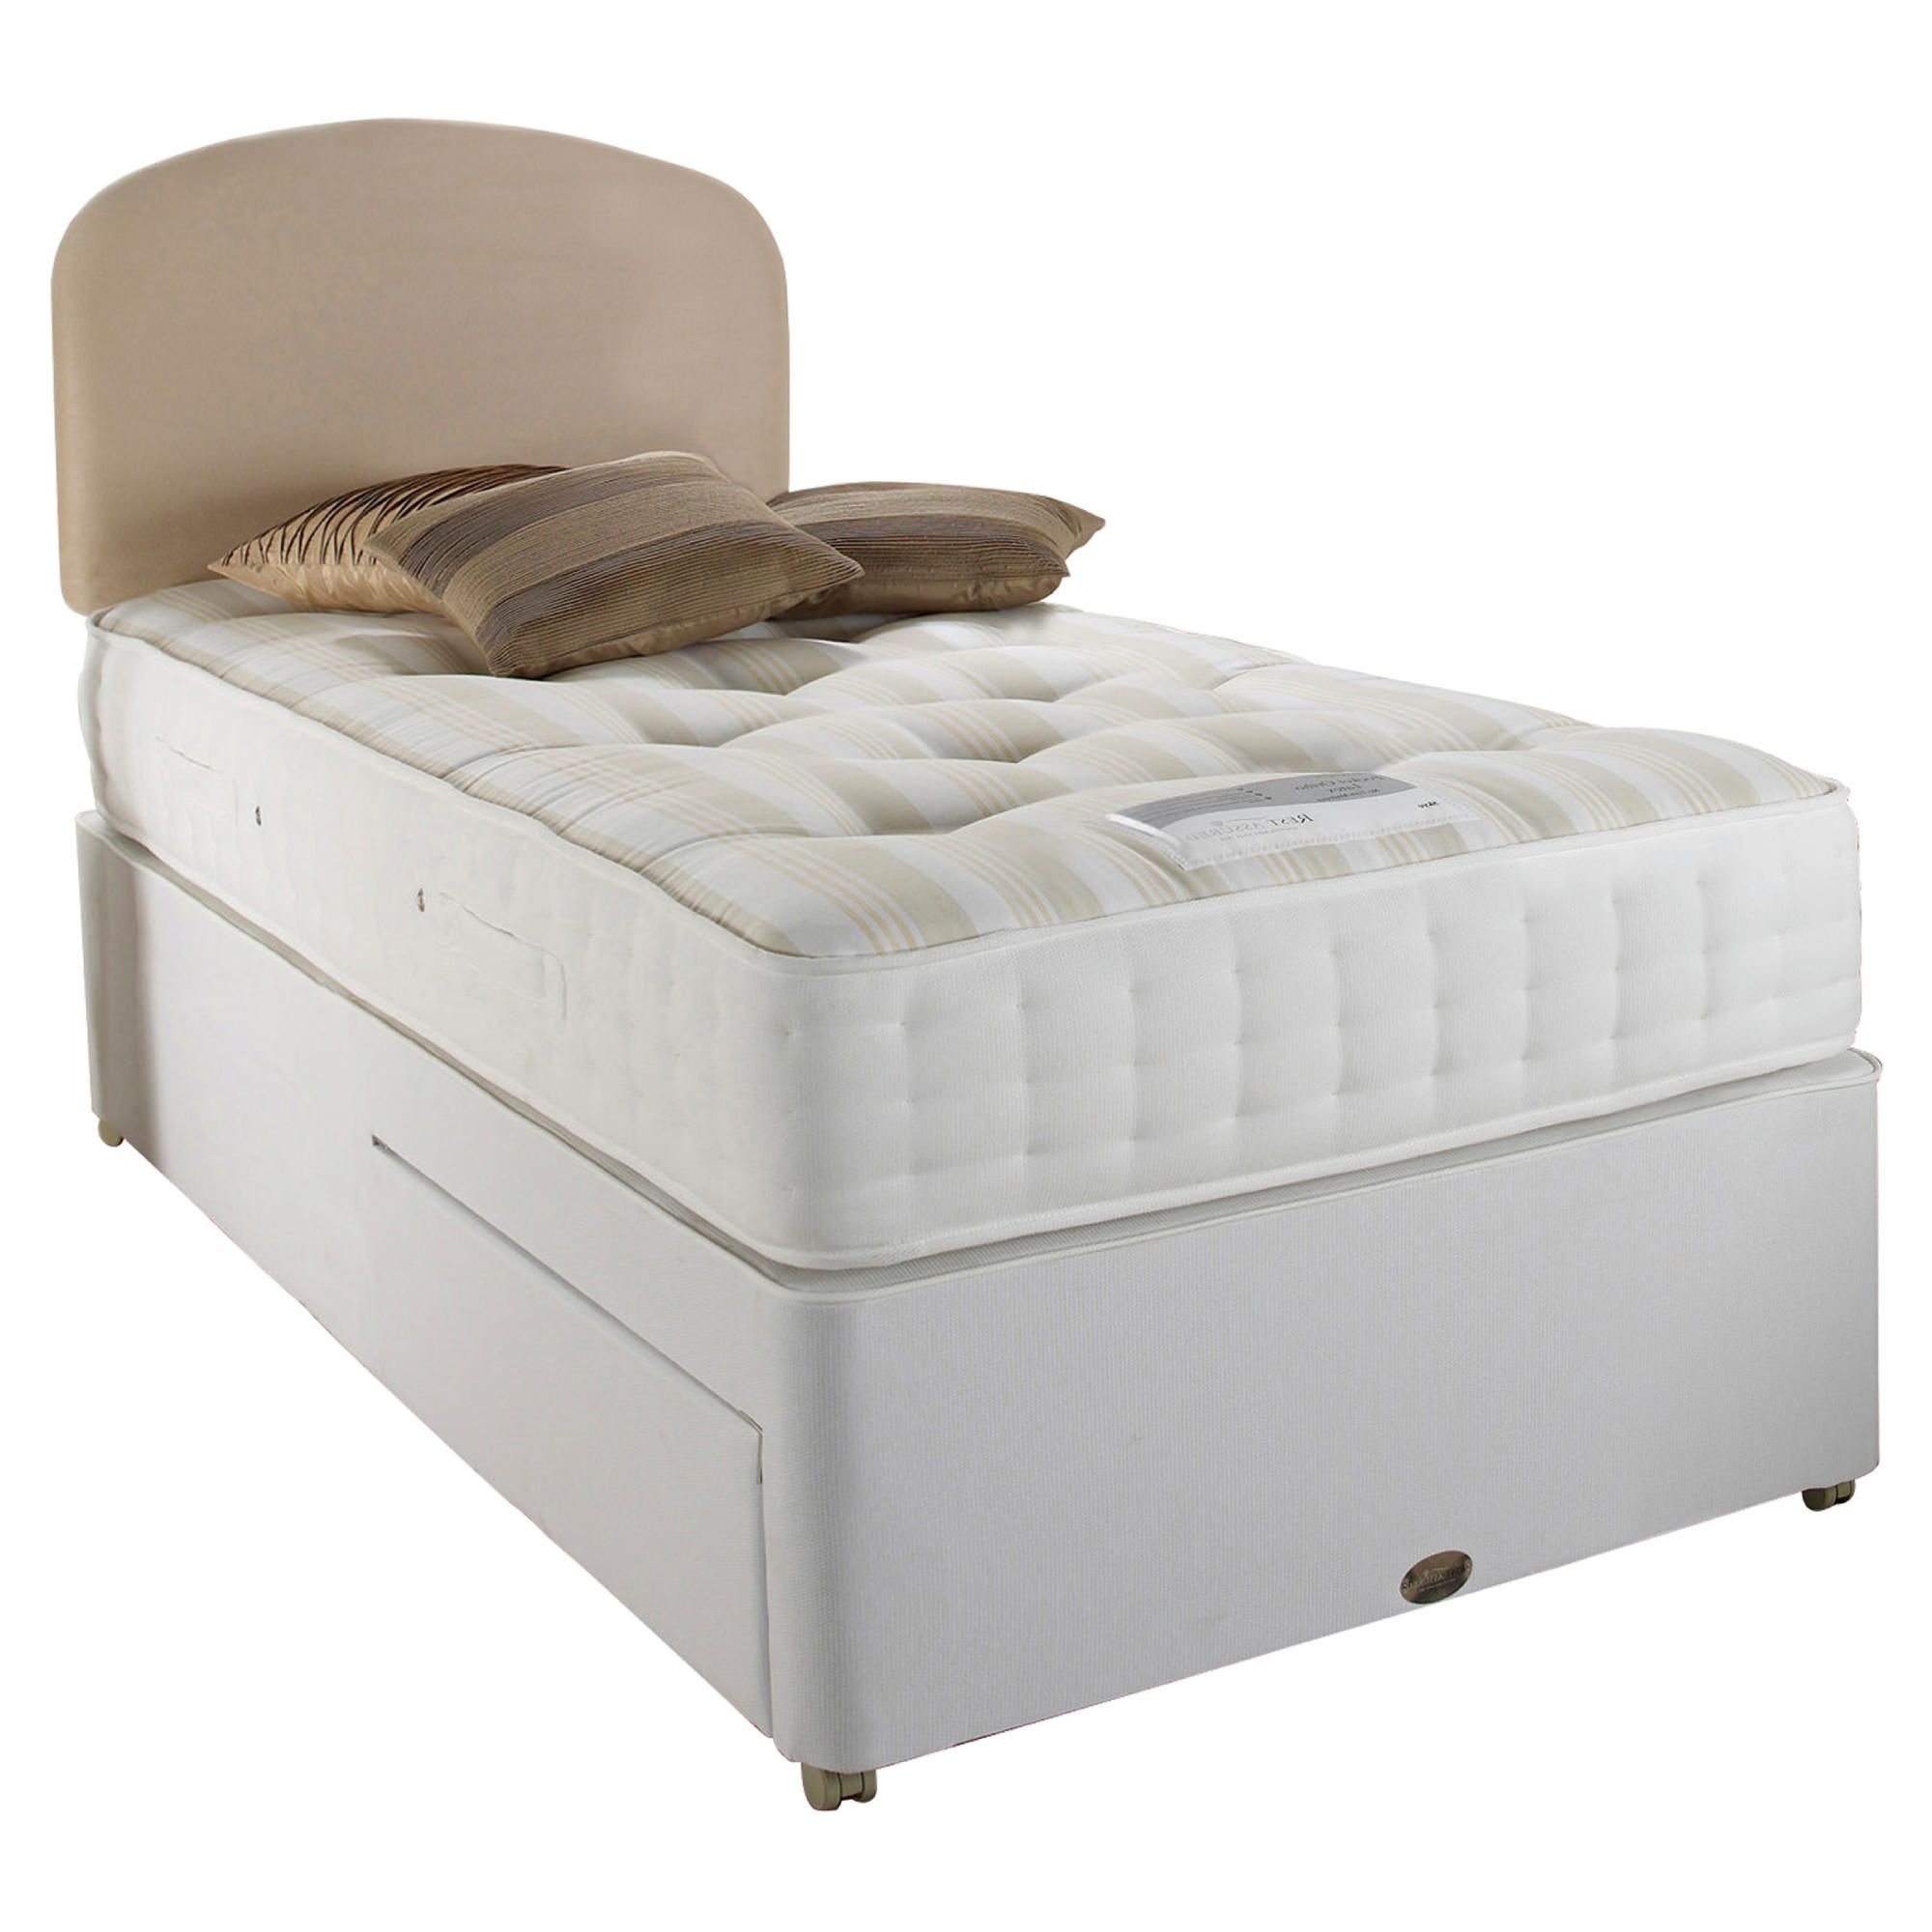 Home and garden furniture sealy posturepedic ortho for Single two drawer divan bed